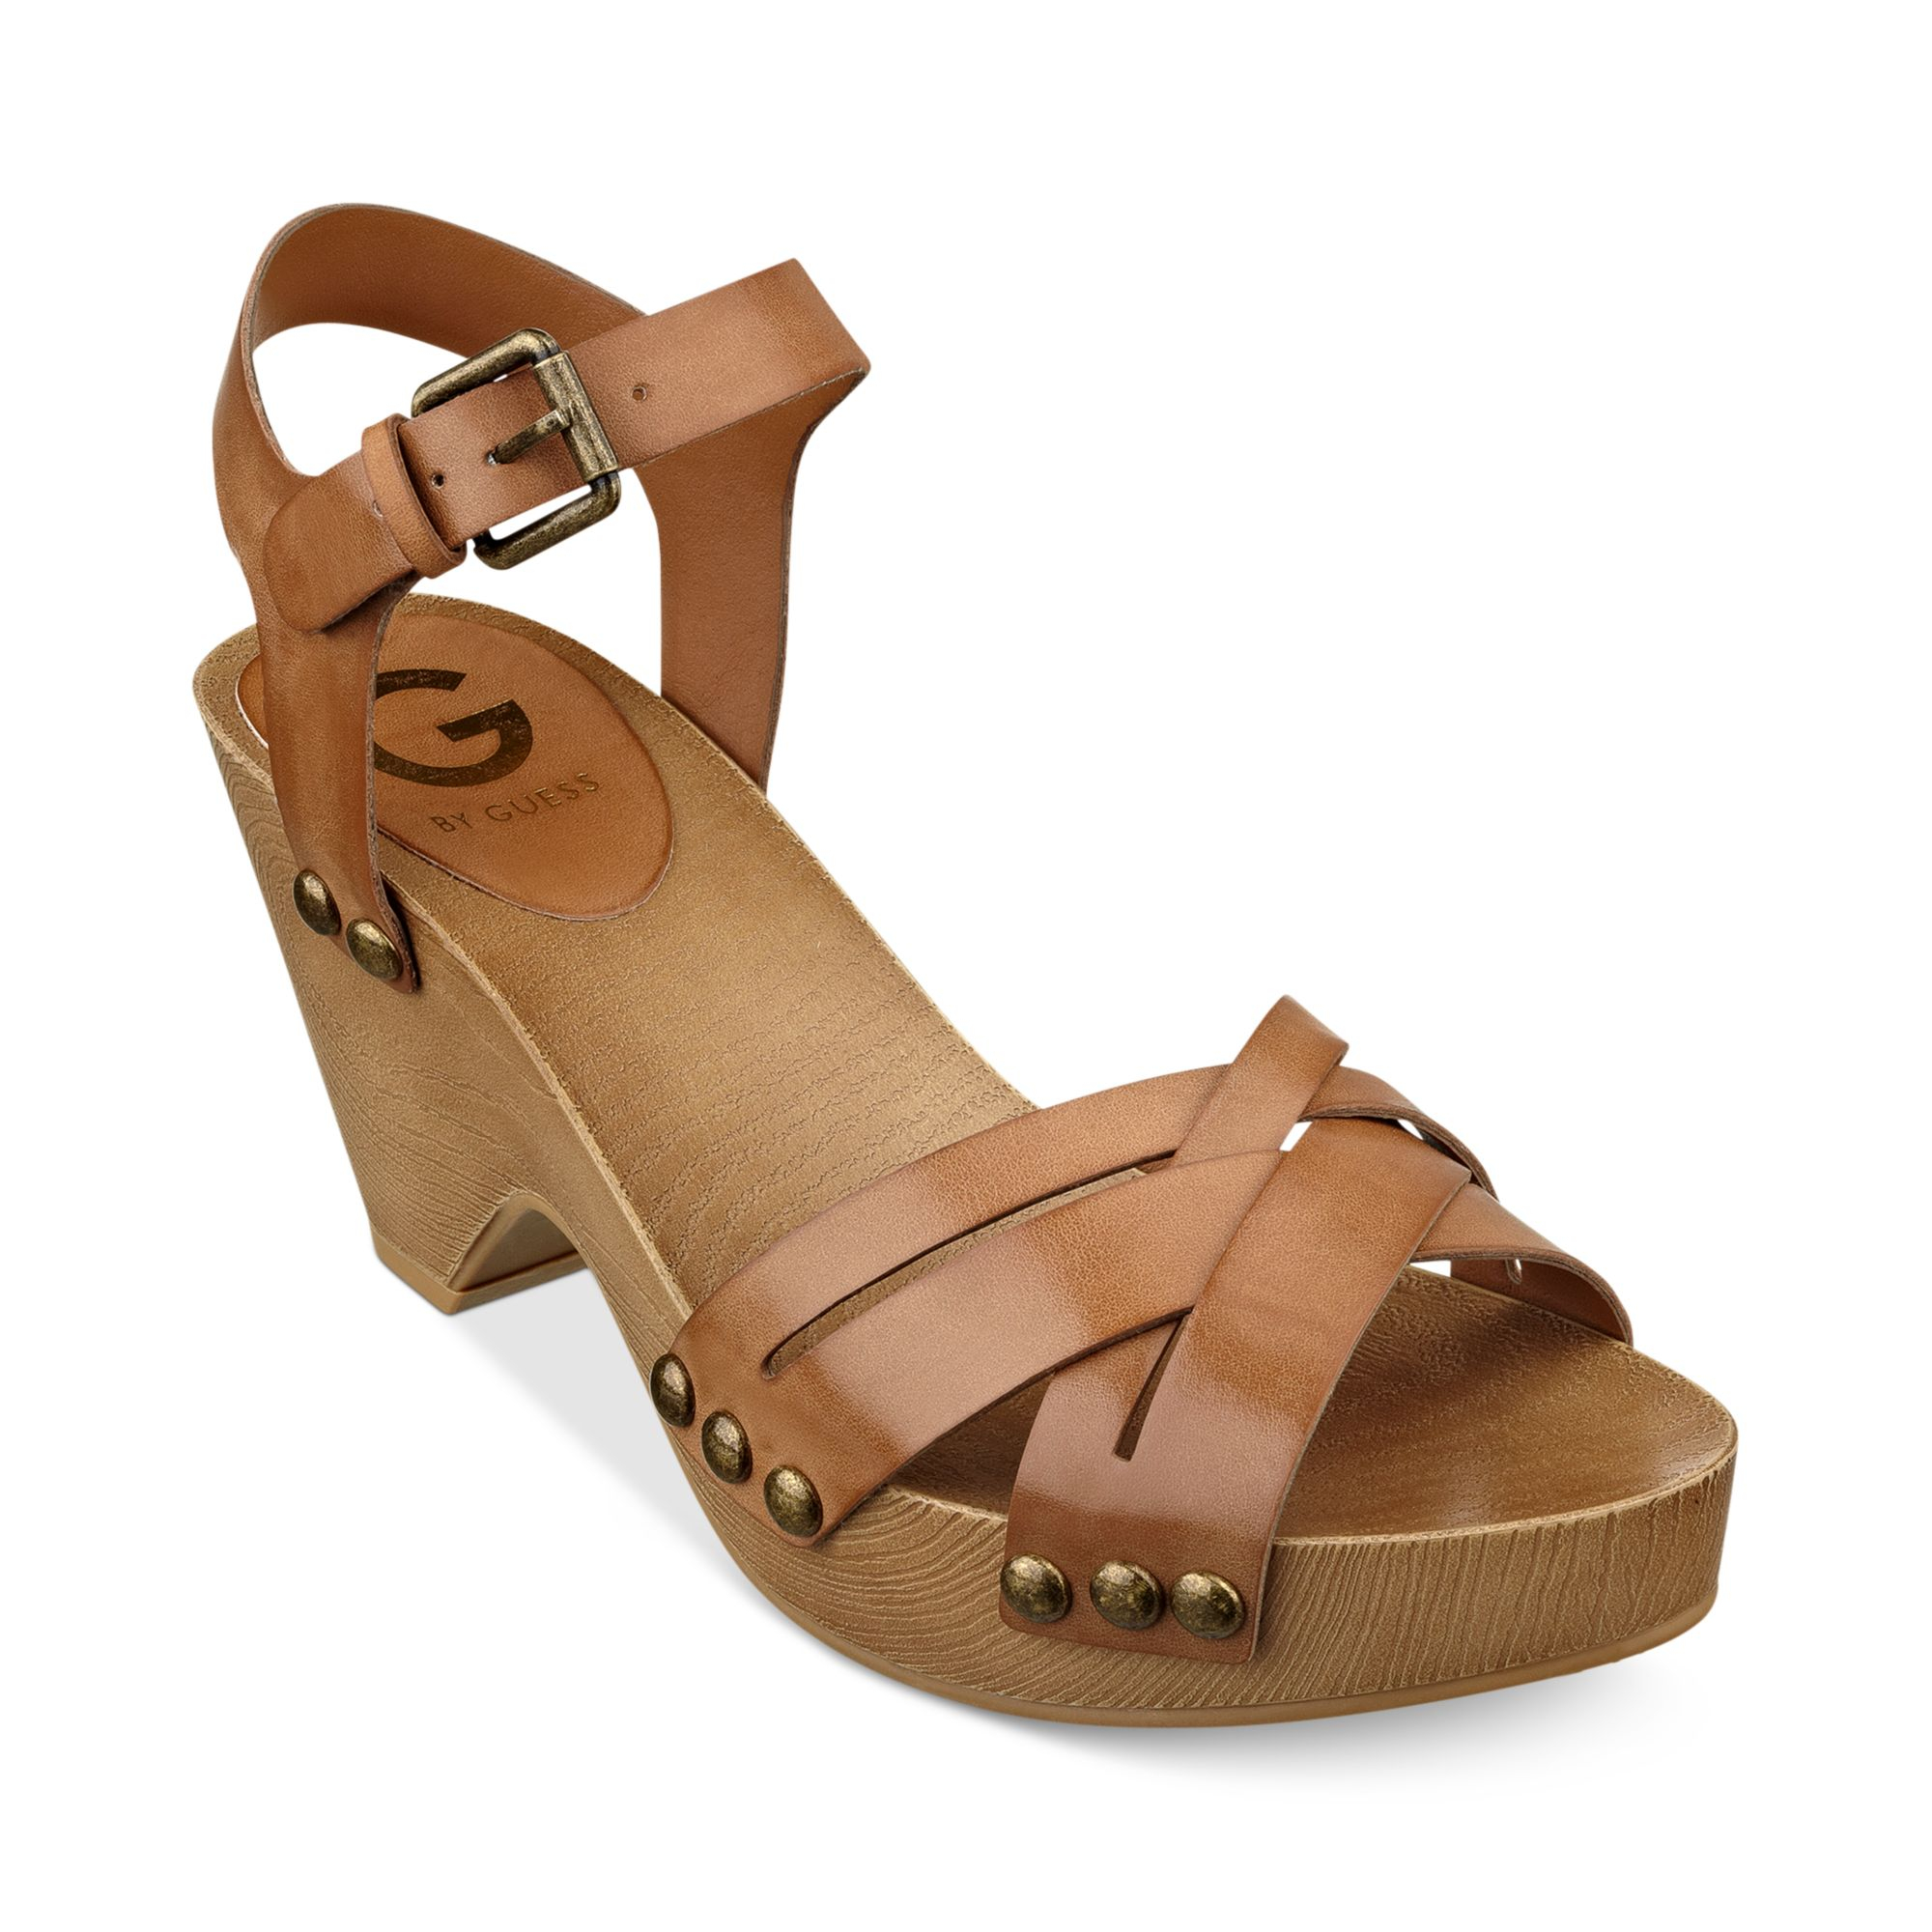 Brown Shoes Sandals Womens Flats